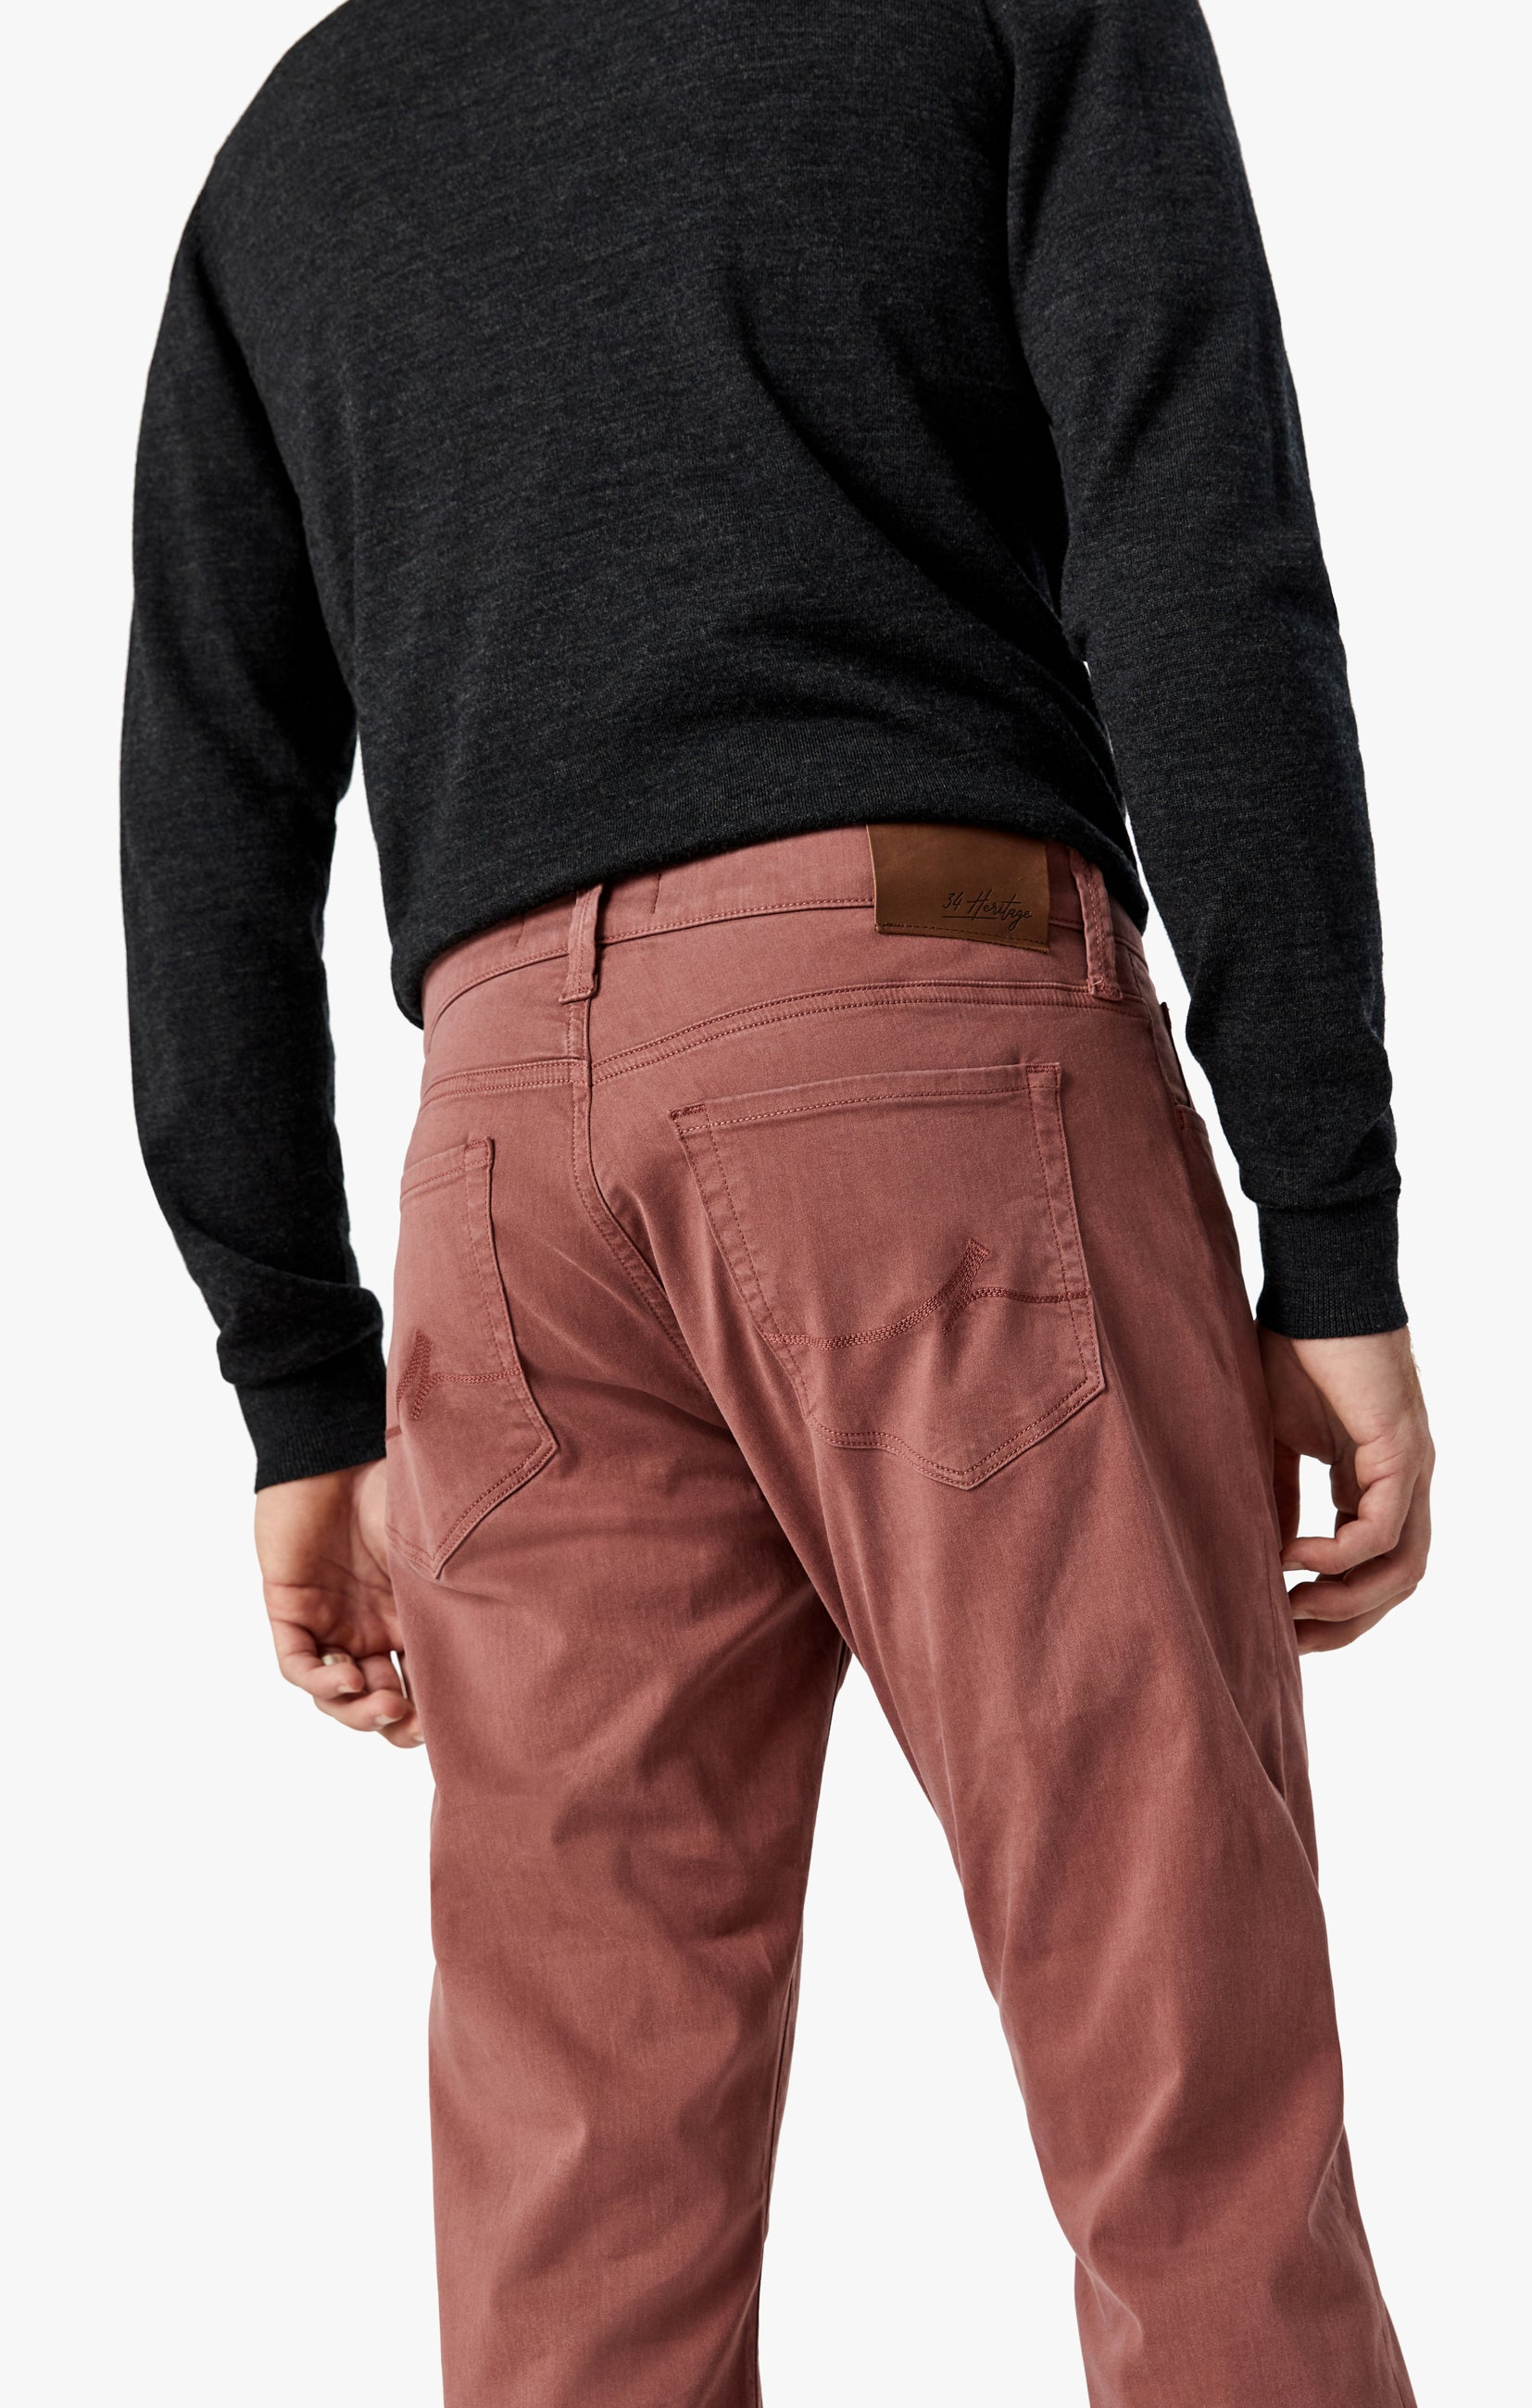 Courage Straight Leg Pants in Berry Twill Image 7